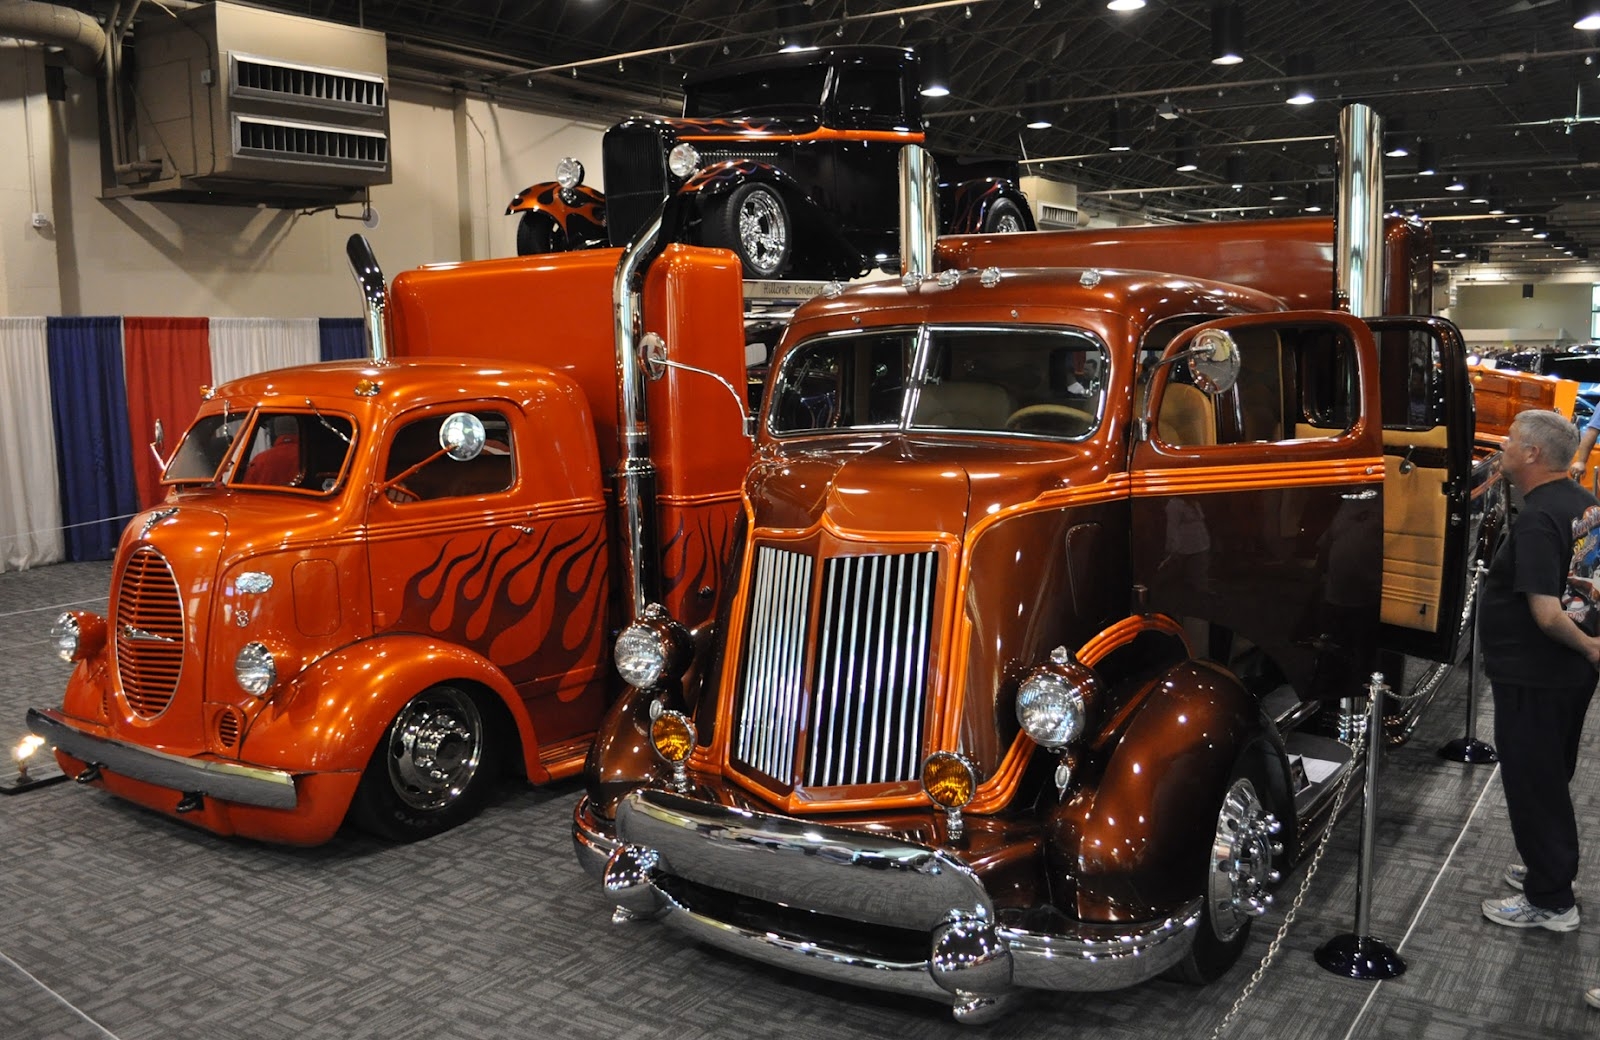 Just A Car Guy : The cool hot rod haulers were teamed up in a display